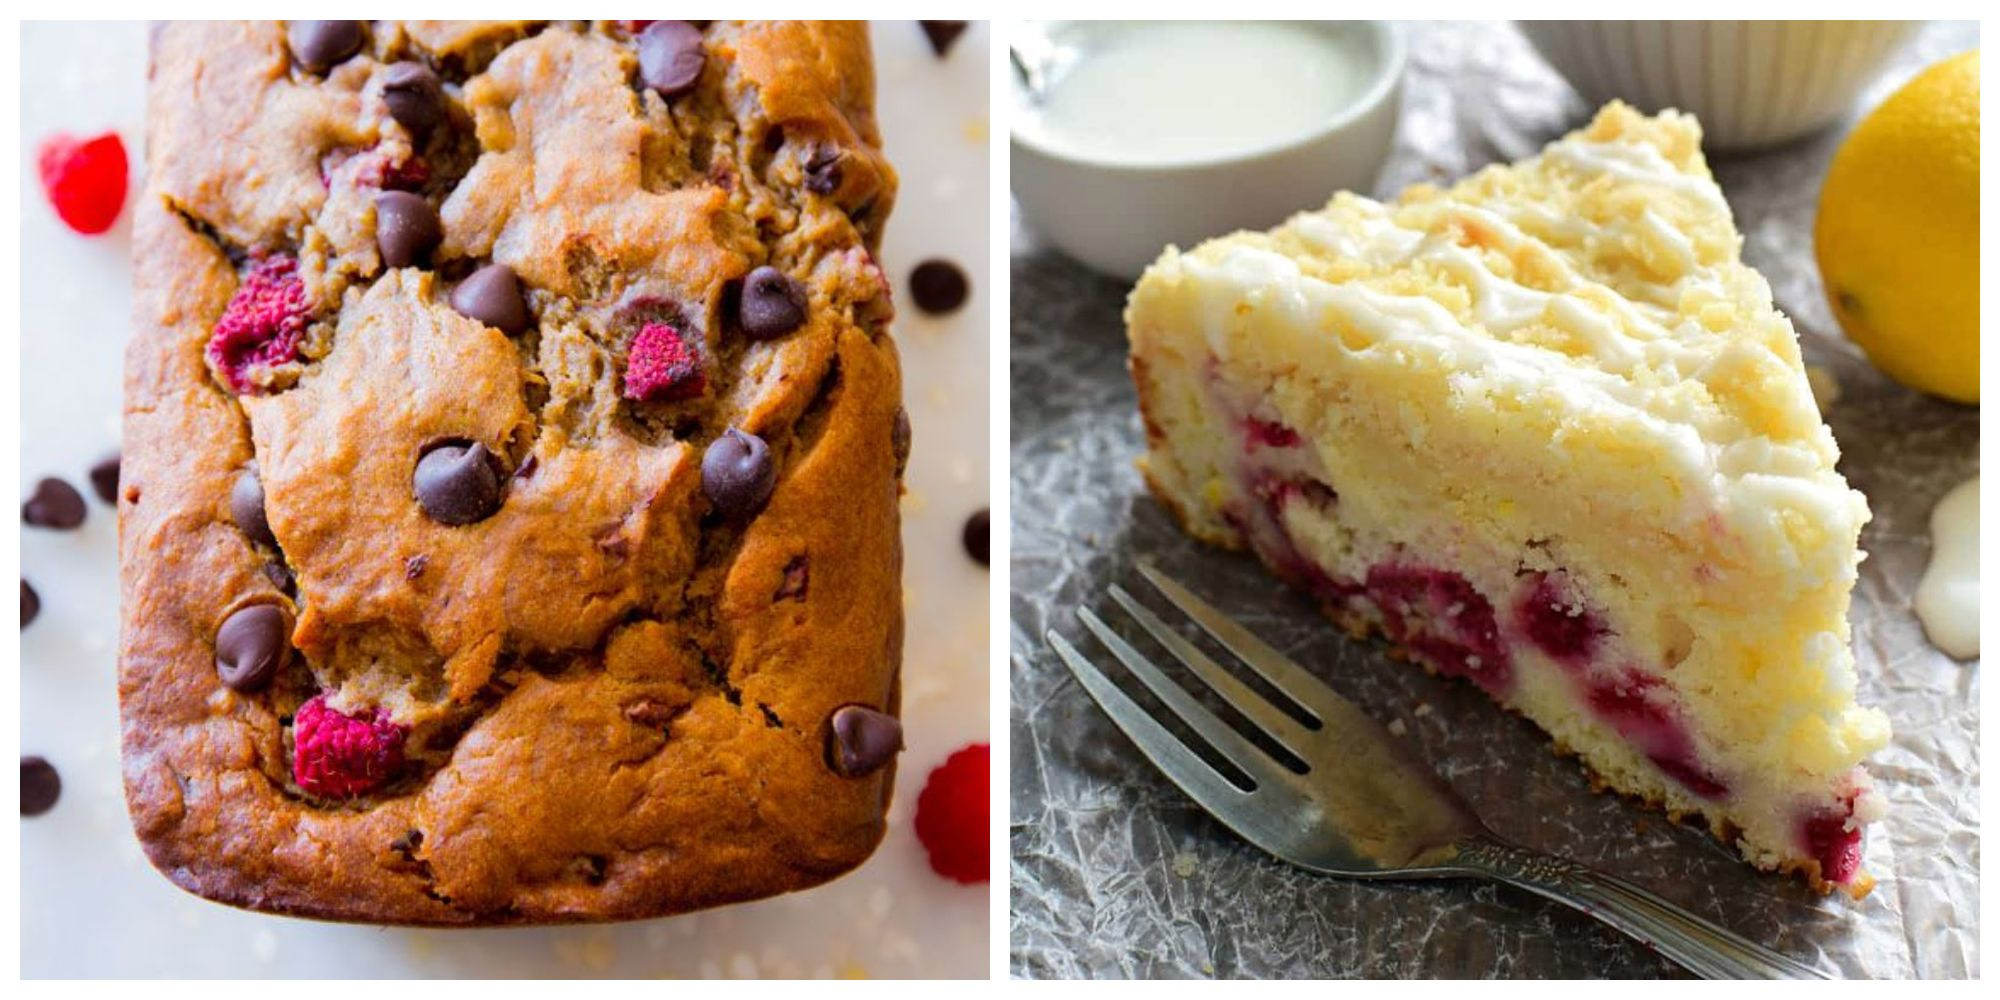 30 Best Raspberry Recipes - Cooking with Fresh Raspberries